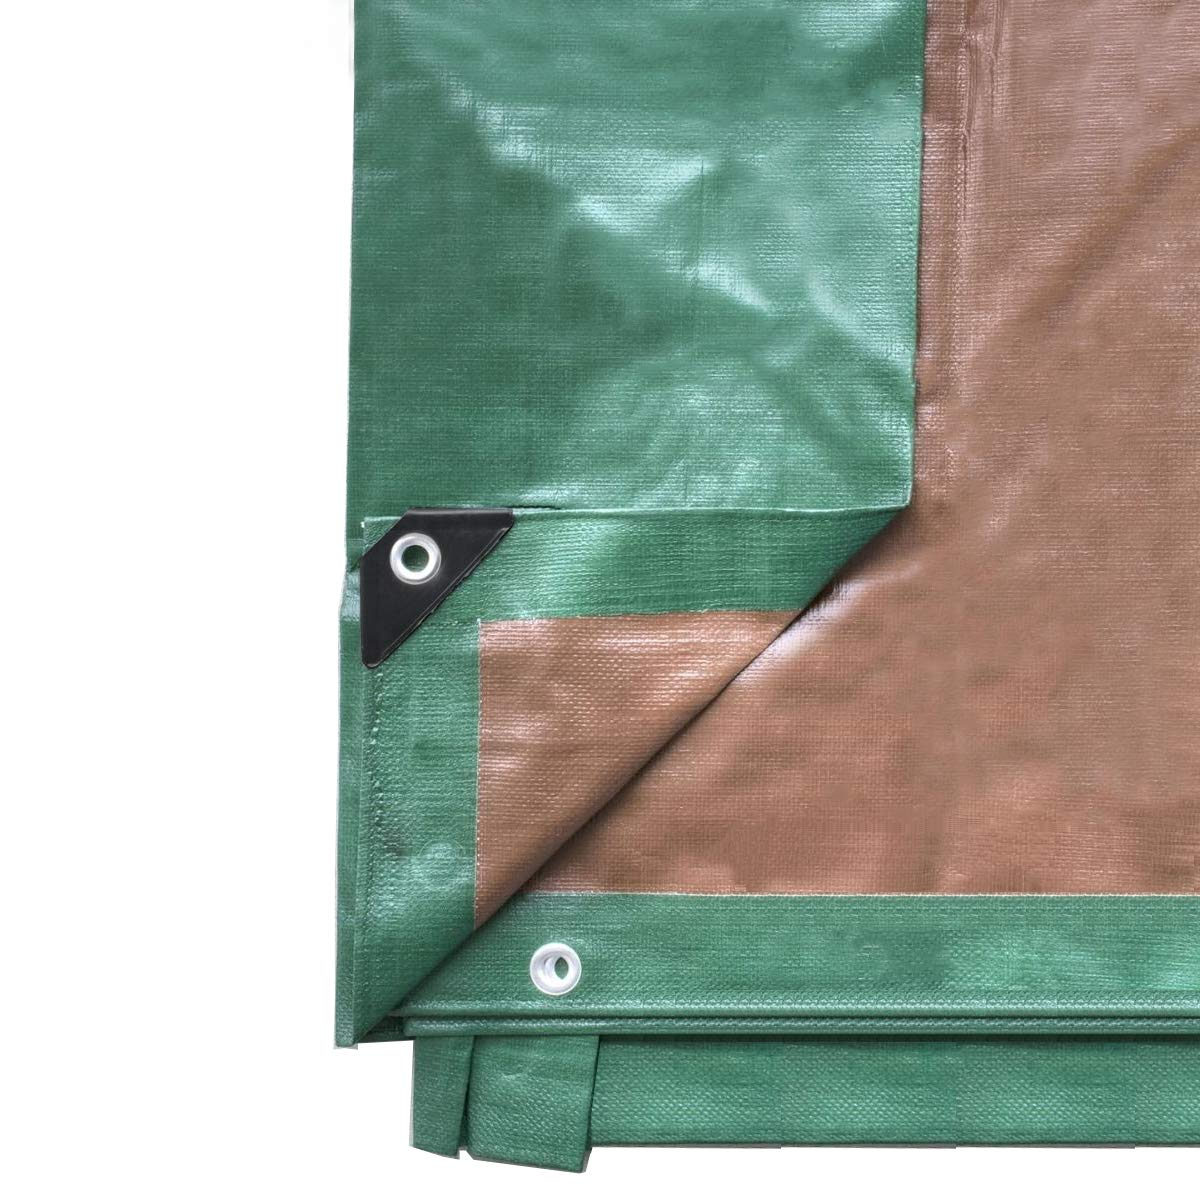 30-Foot by 50-Foot Green and Brown Reversible Multi-Purpose Waterproof Poly Tarp Cover for Tents and Weather Protection by Tent and Table